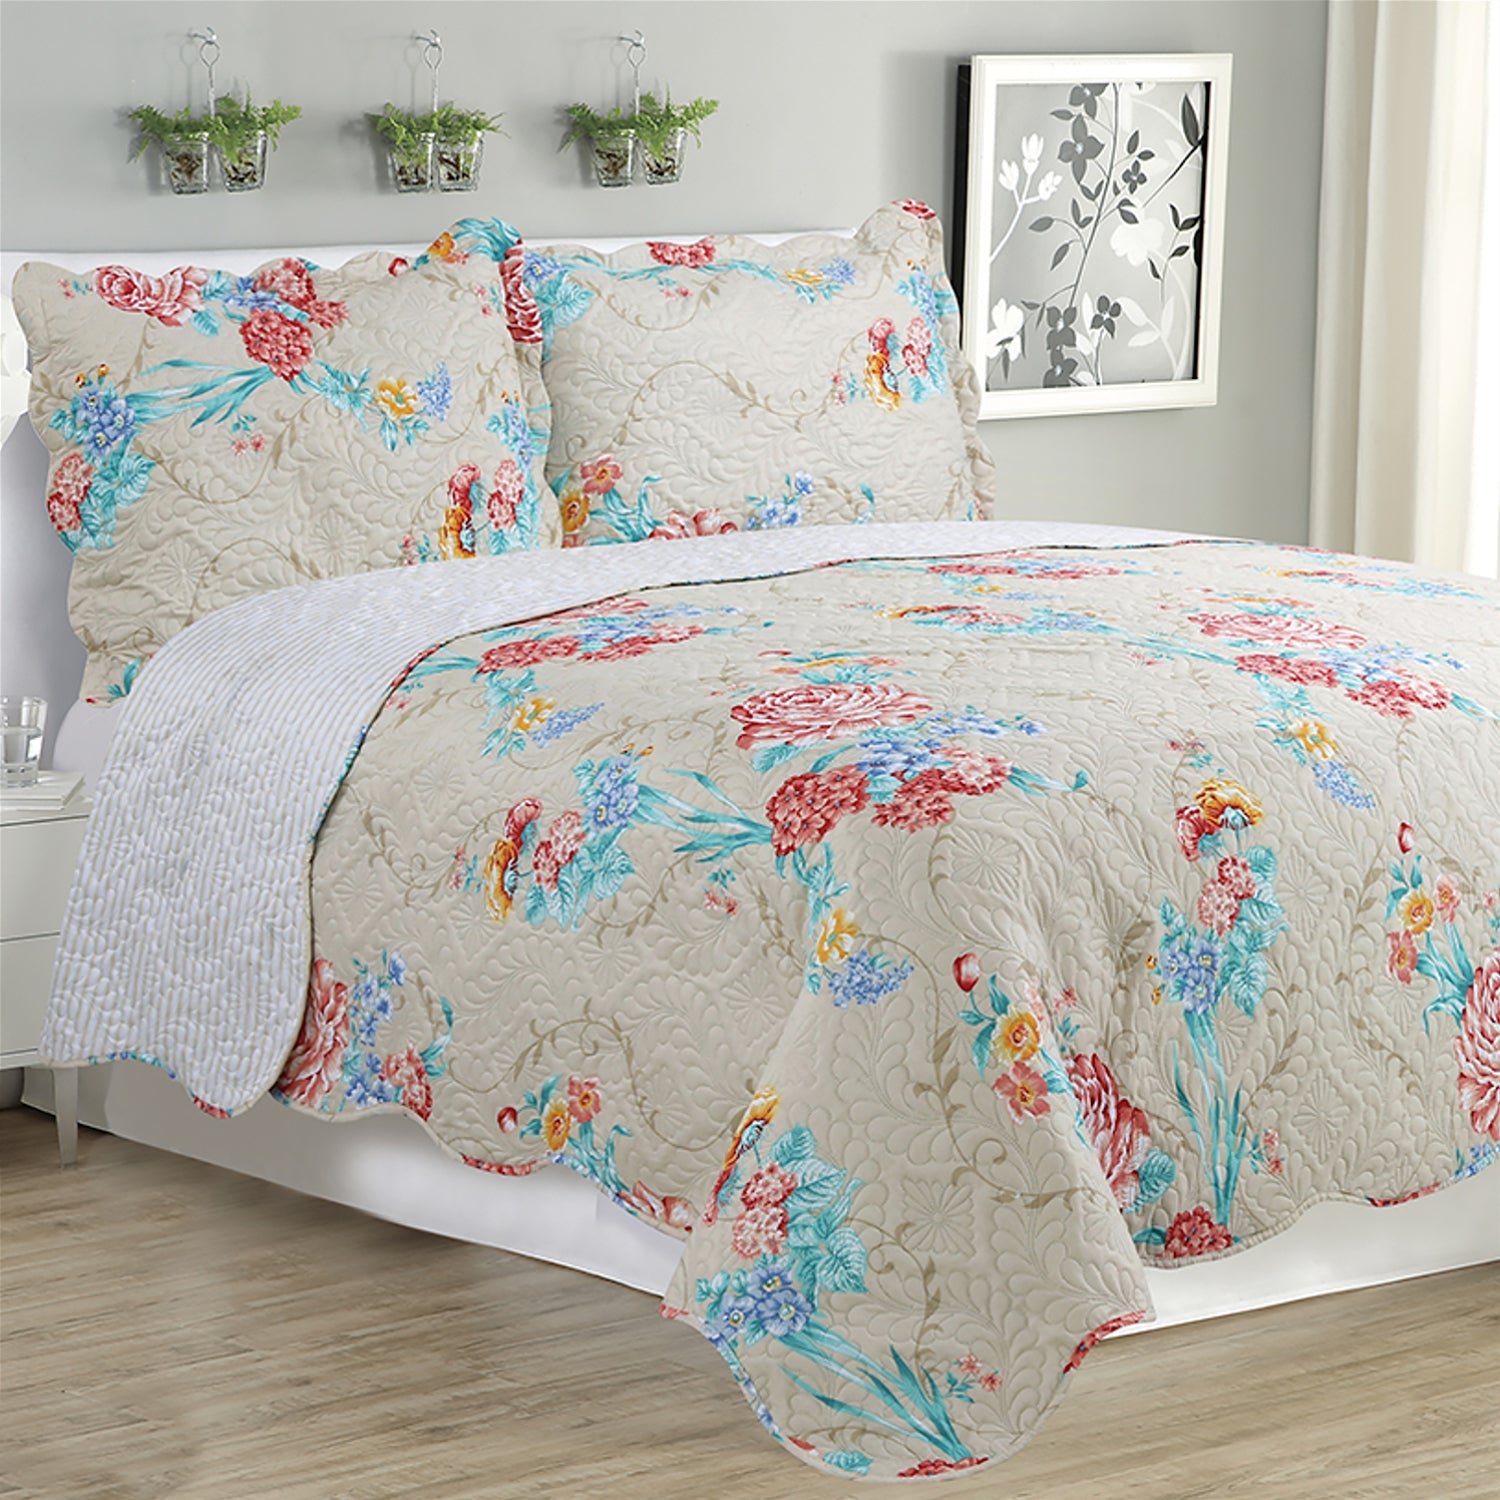 Kim - 3 Piece Quilt Set - Rose